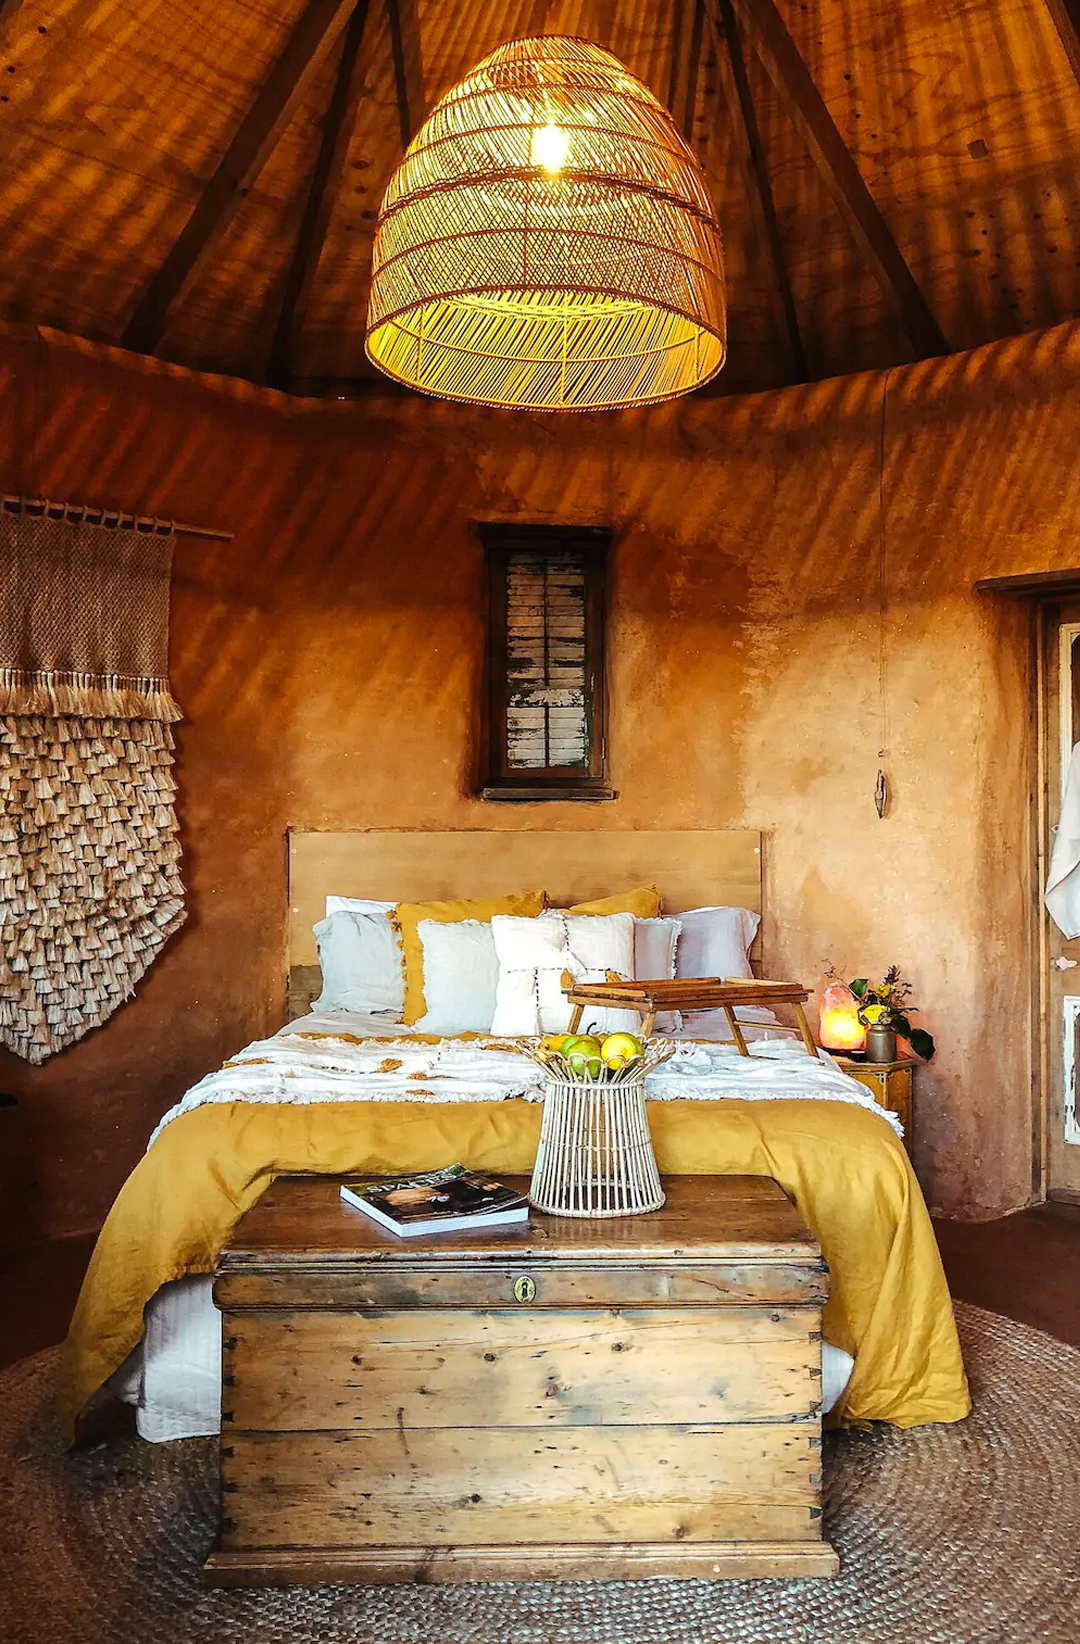 interior of straw bale hut